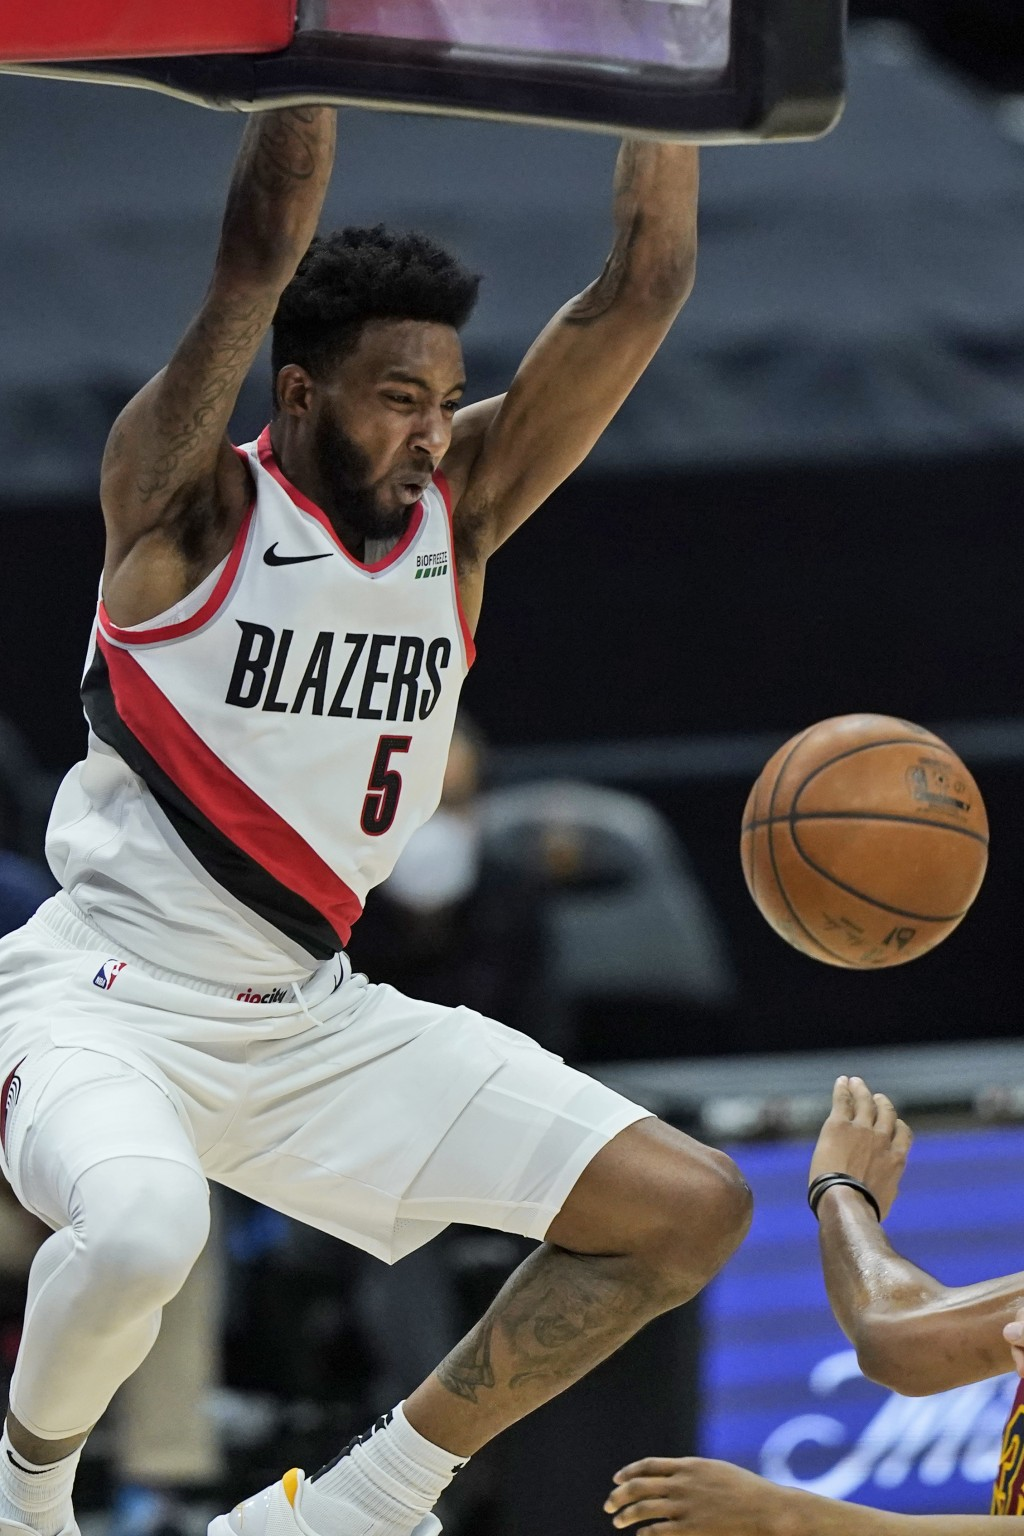 Portland Trail Blazers' Derrick Jones Jr. dunks during the second half of the team's NBA basketball game against the Cleveland Cavaliers, Wednesday, M...